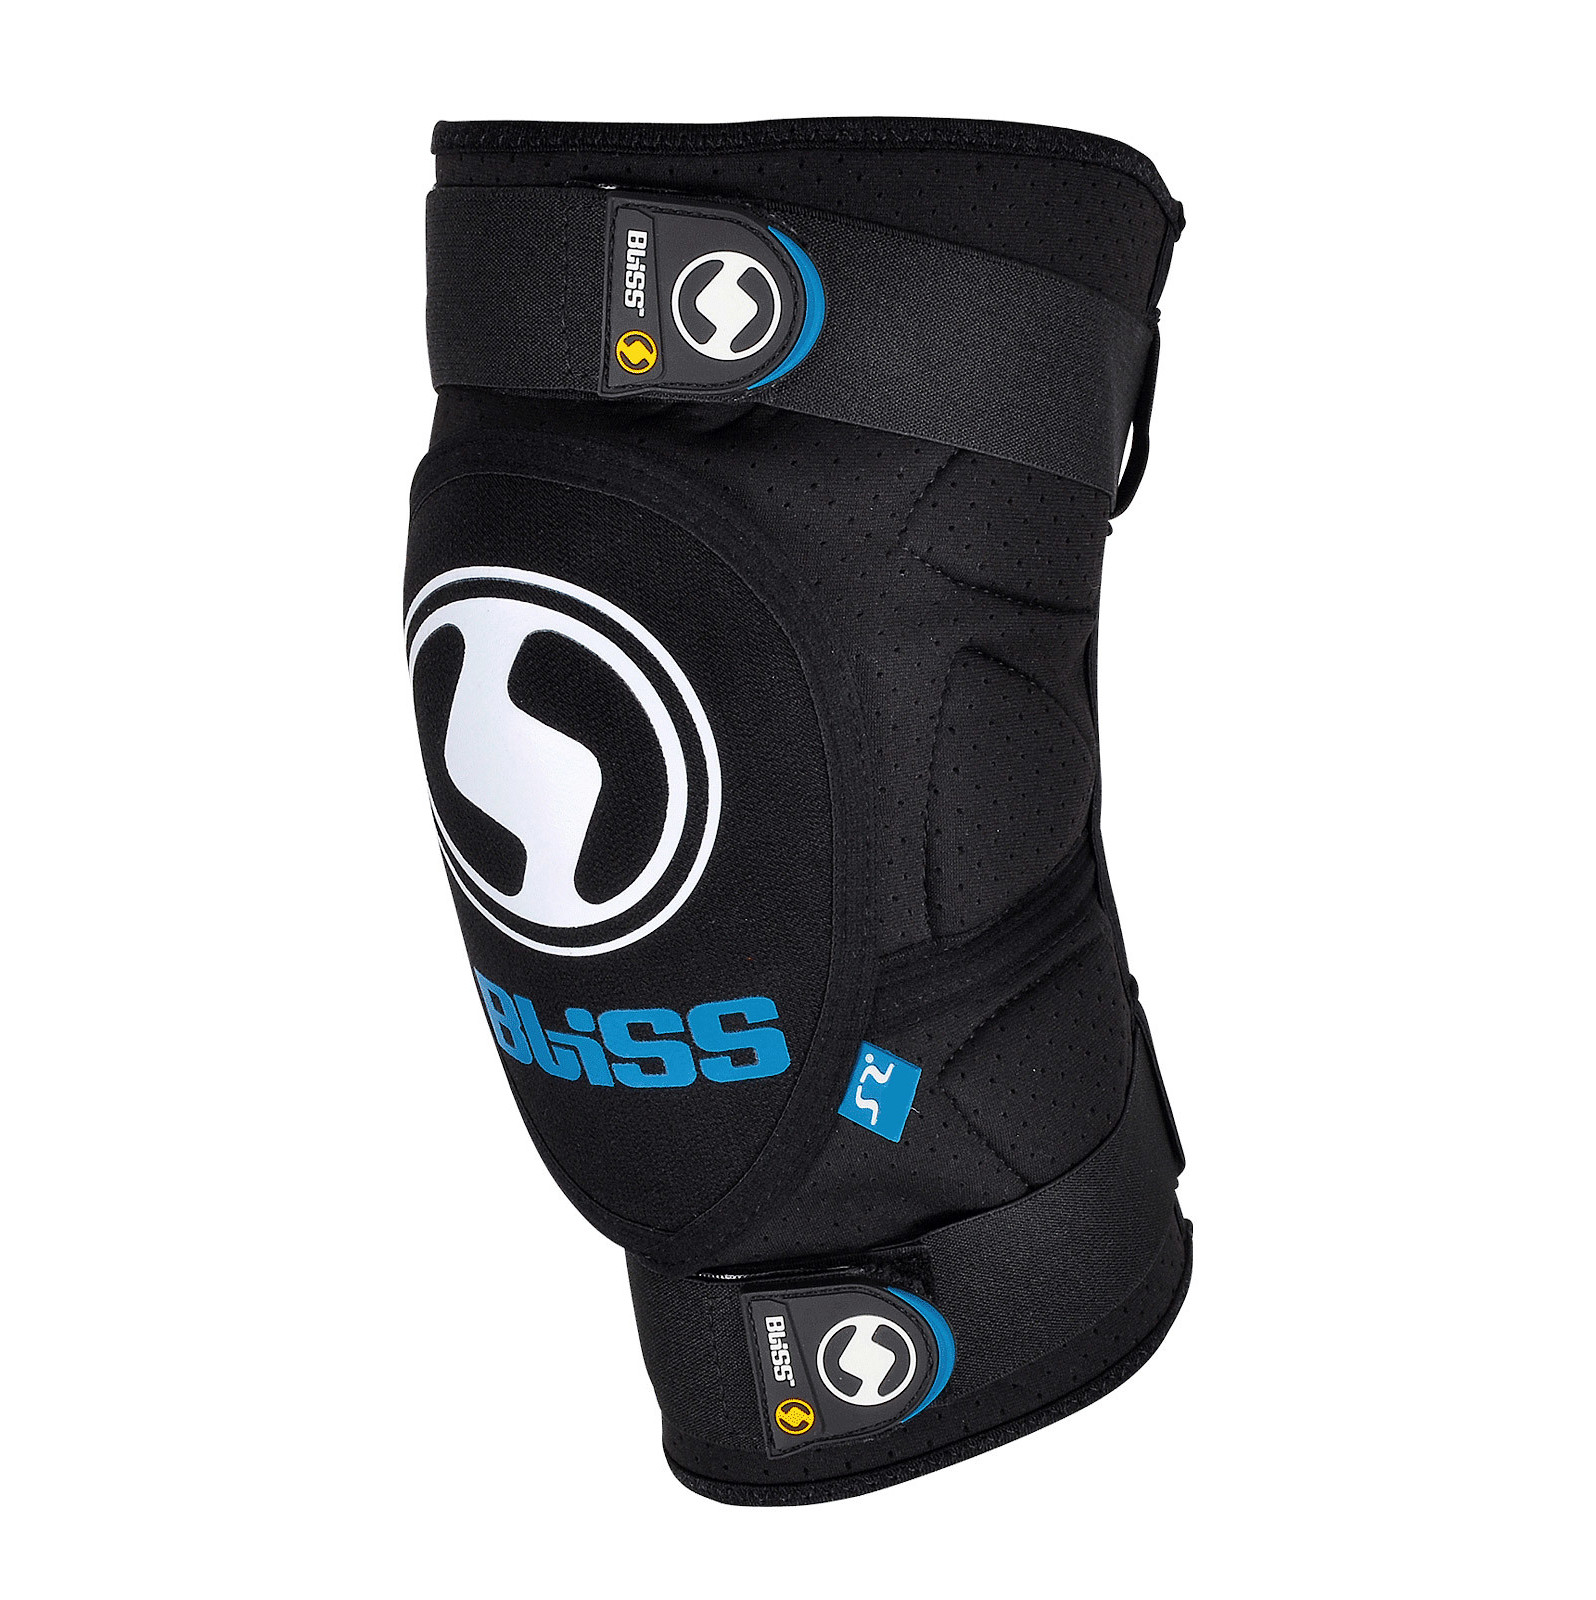 Bliss Protection ARG Vertical Knee Pad